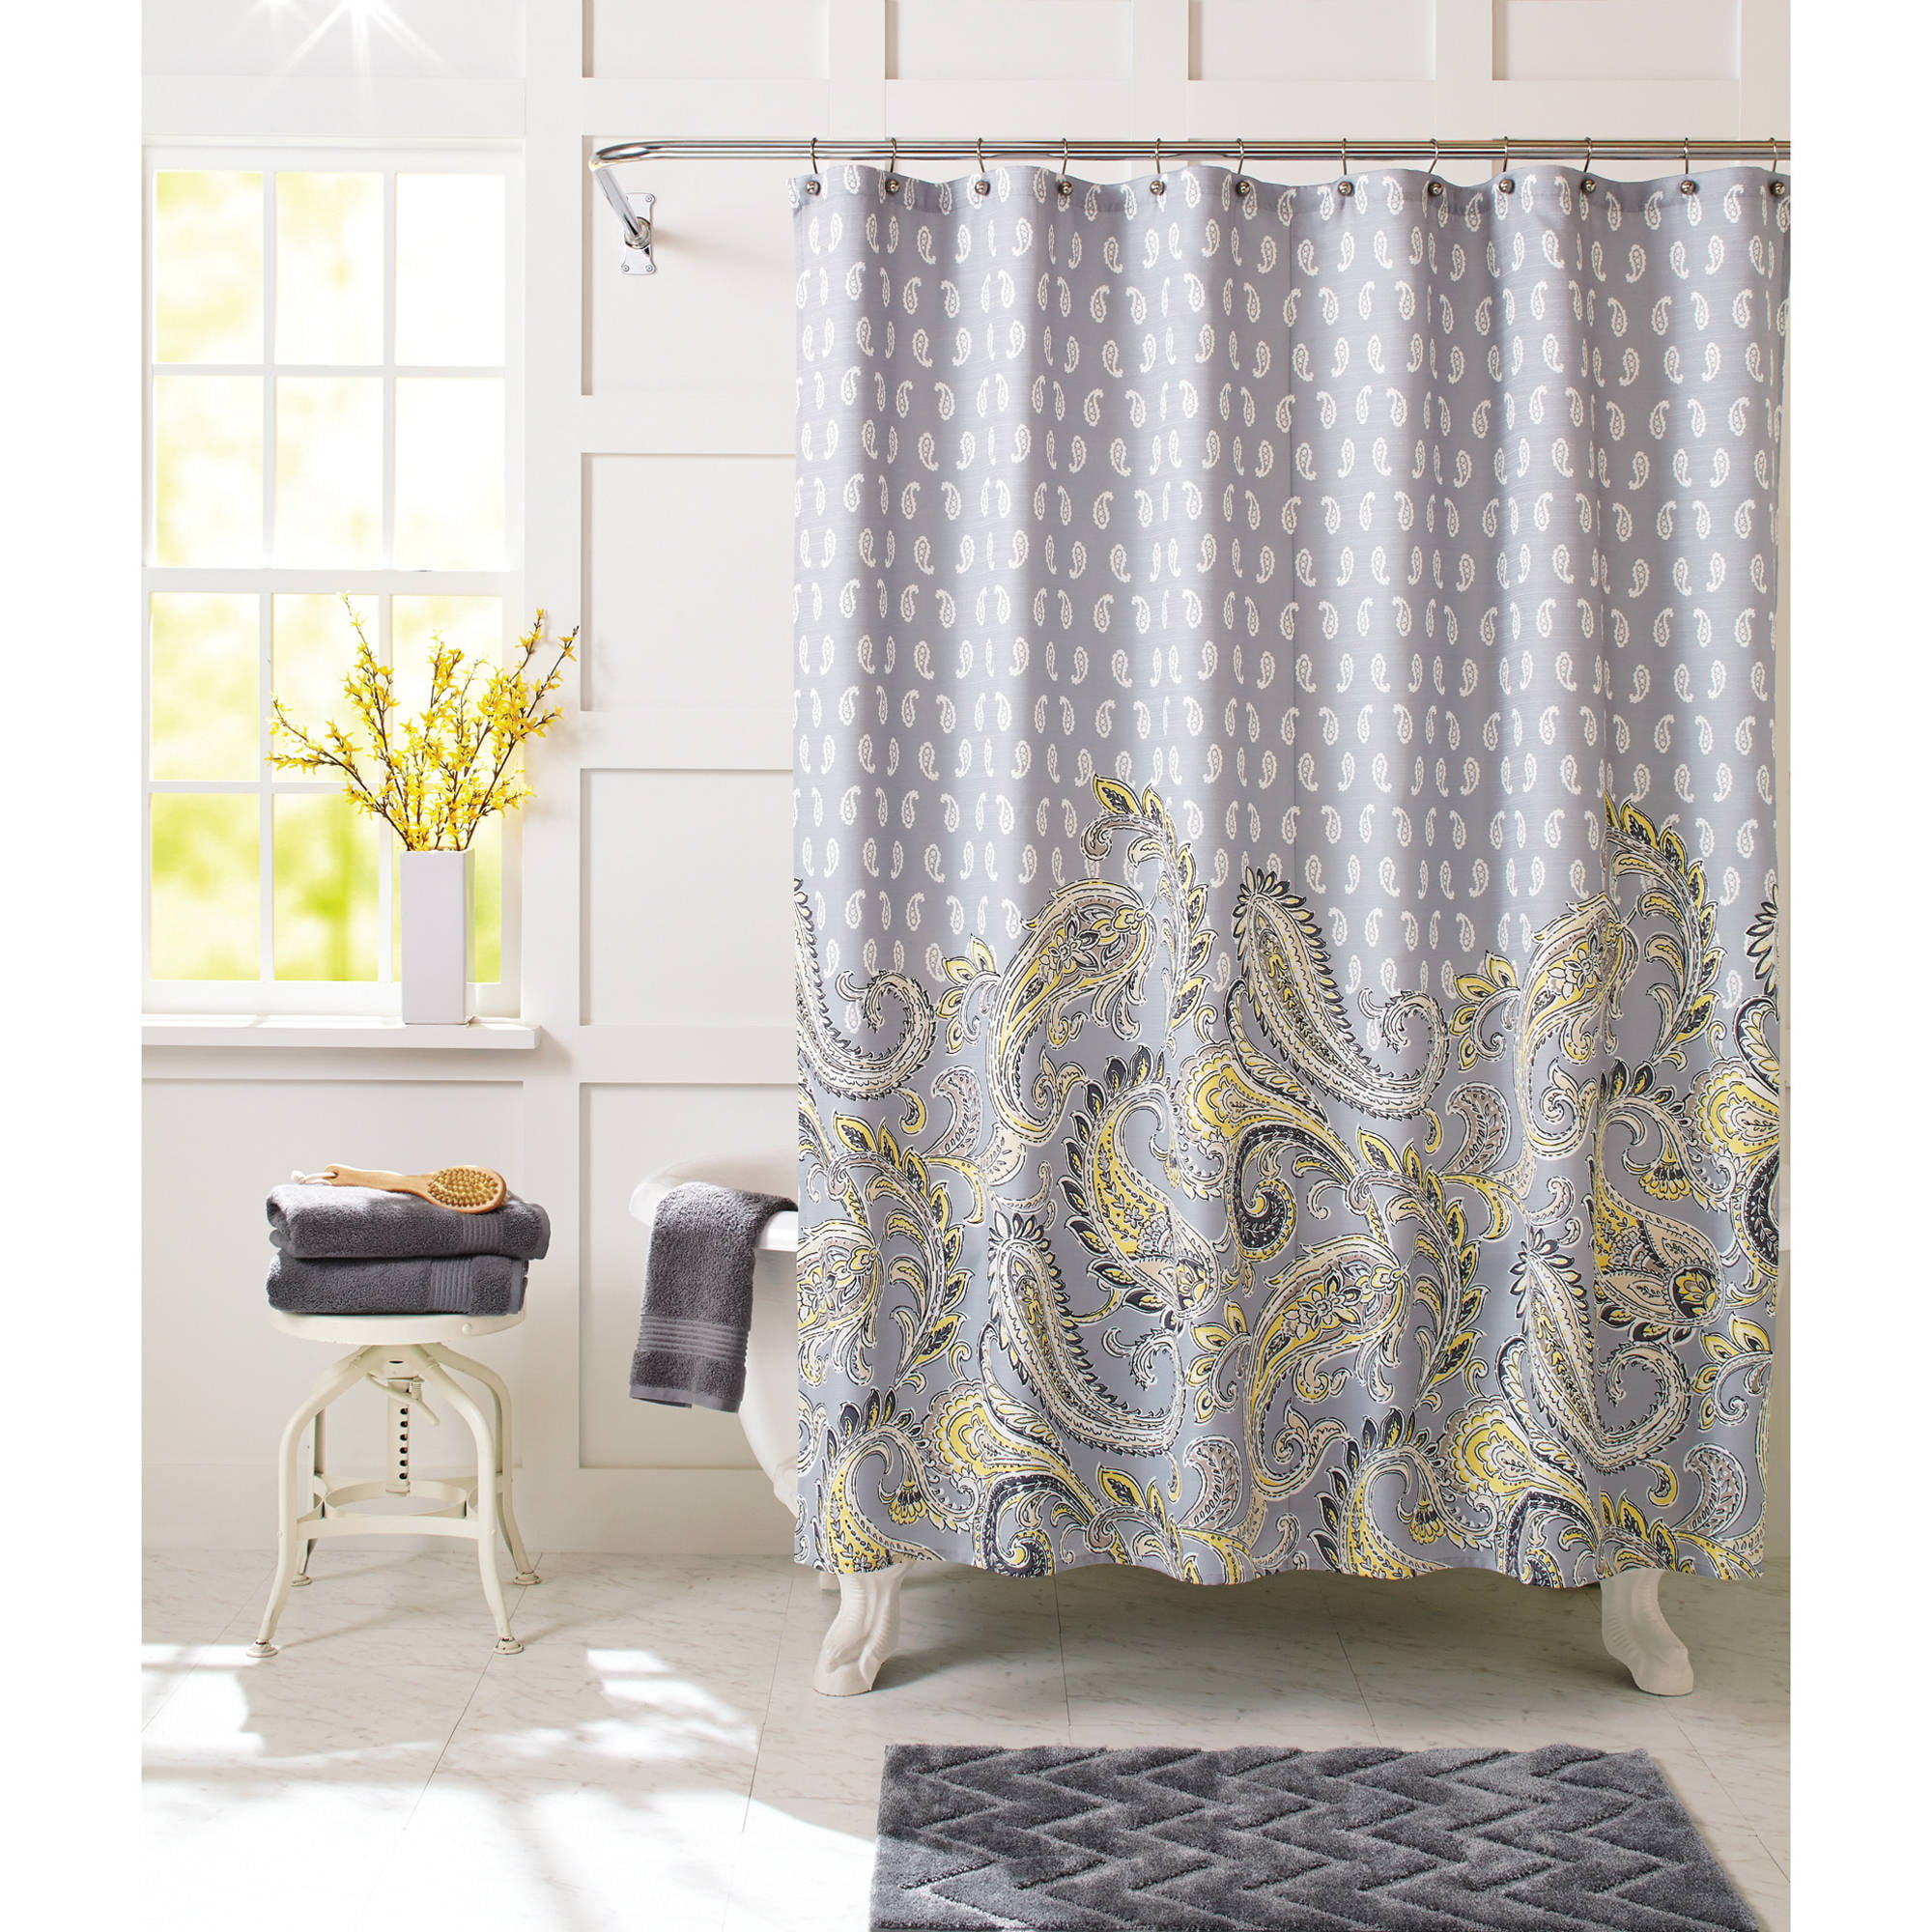 grey tape that yellow black images floral with full curtains accessories design and magnificent kitchen are gray flowered valances curtain paisley featuring of size